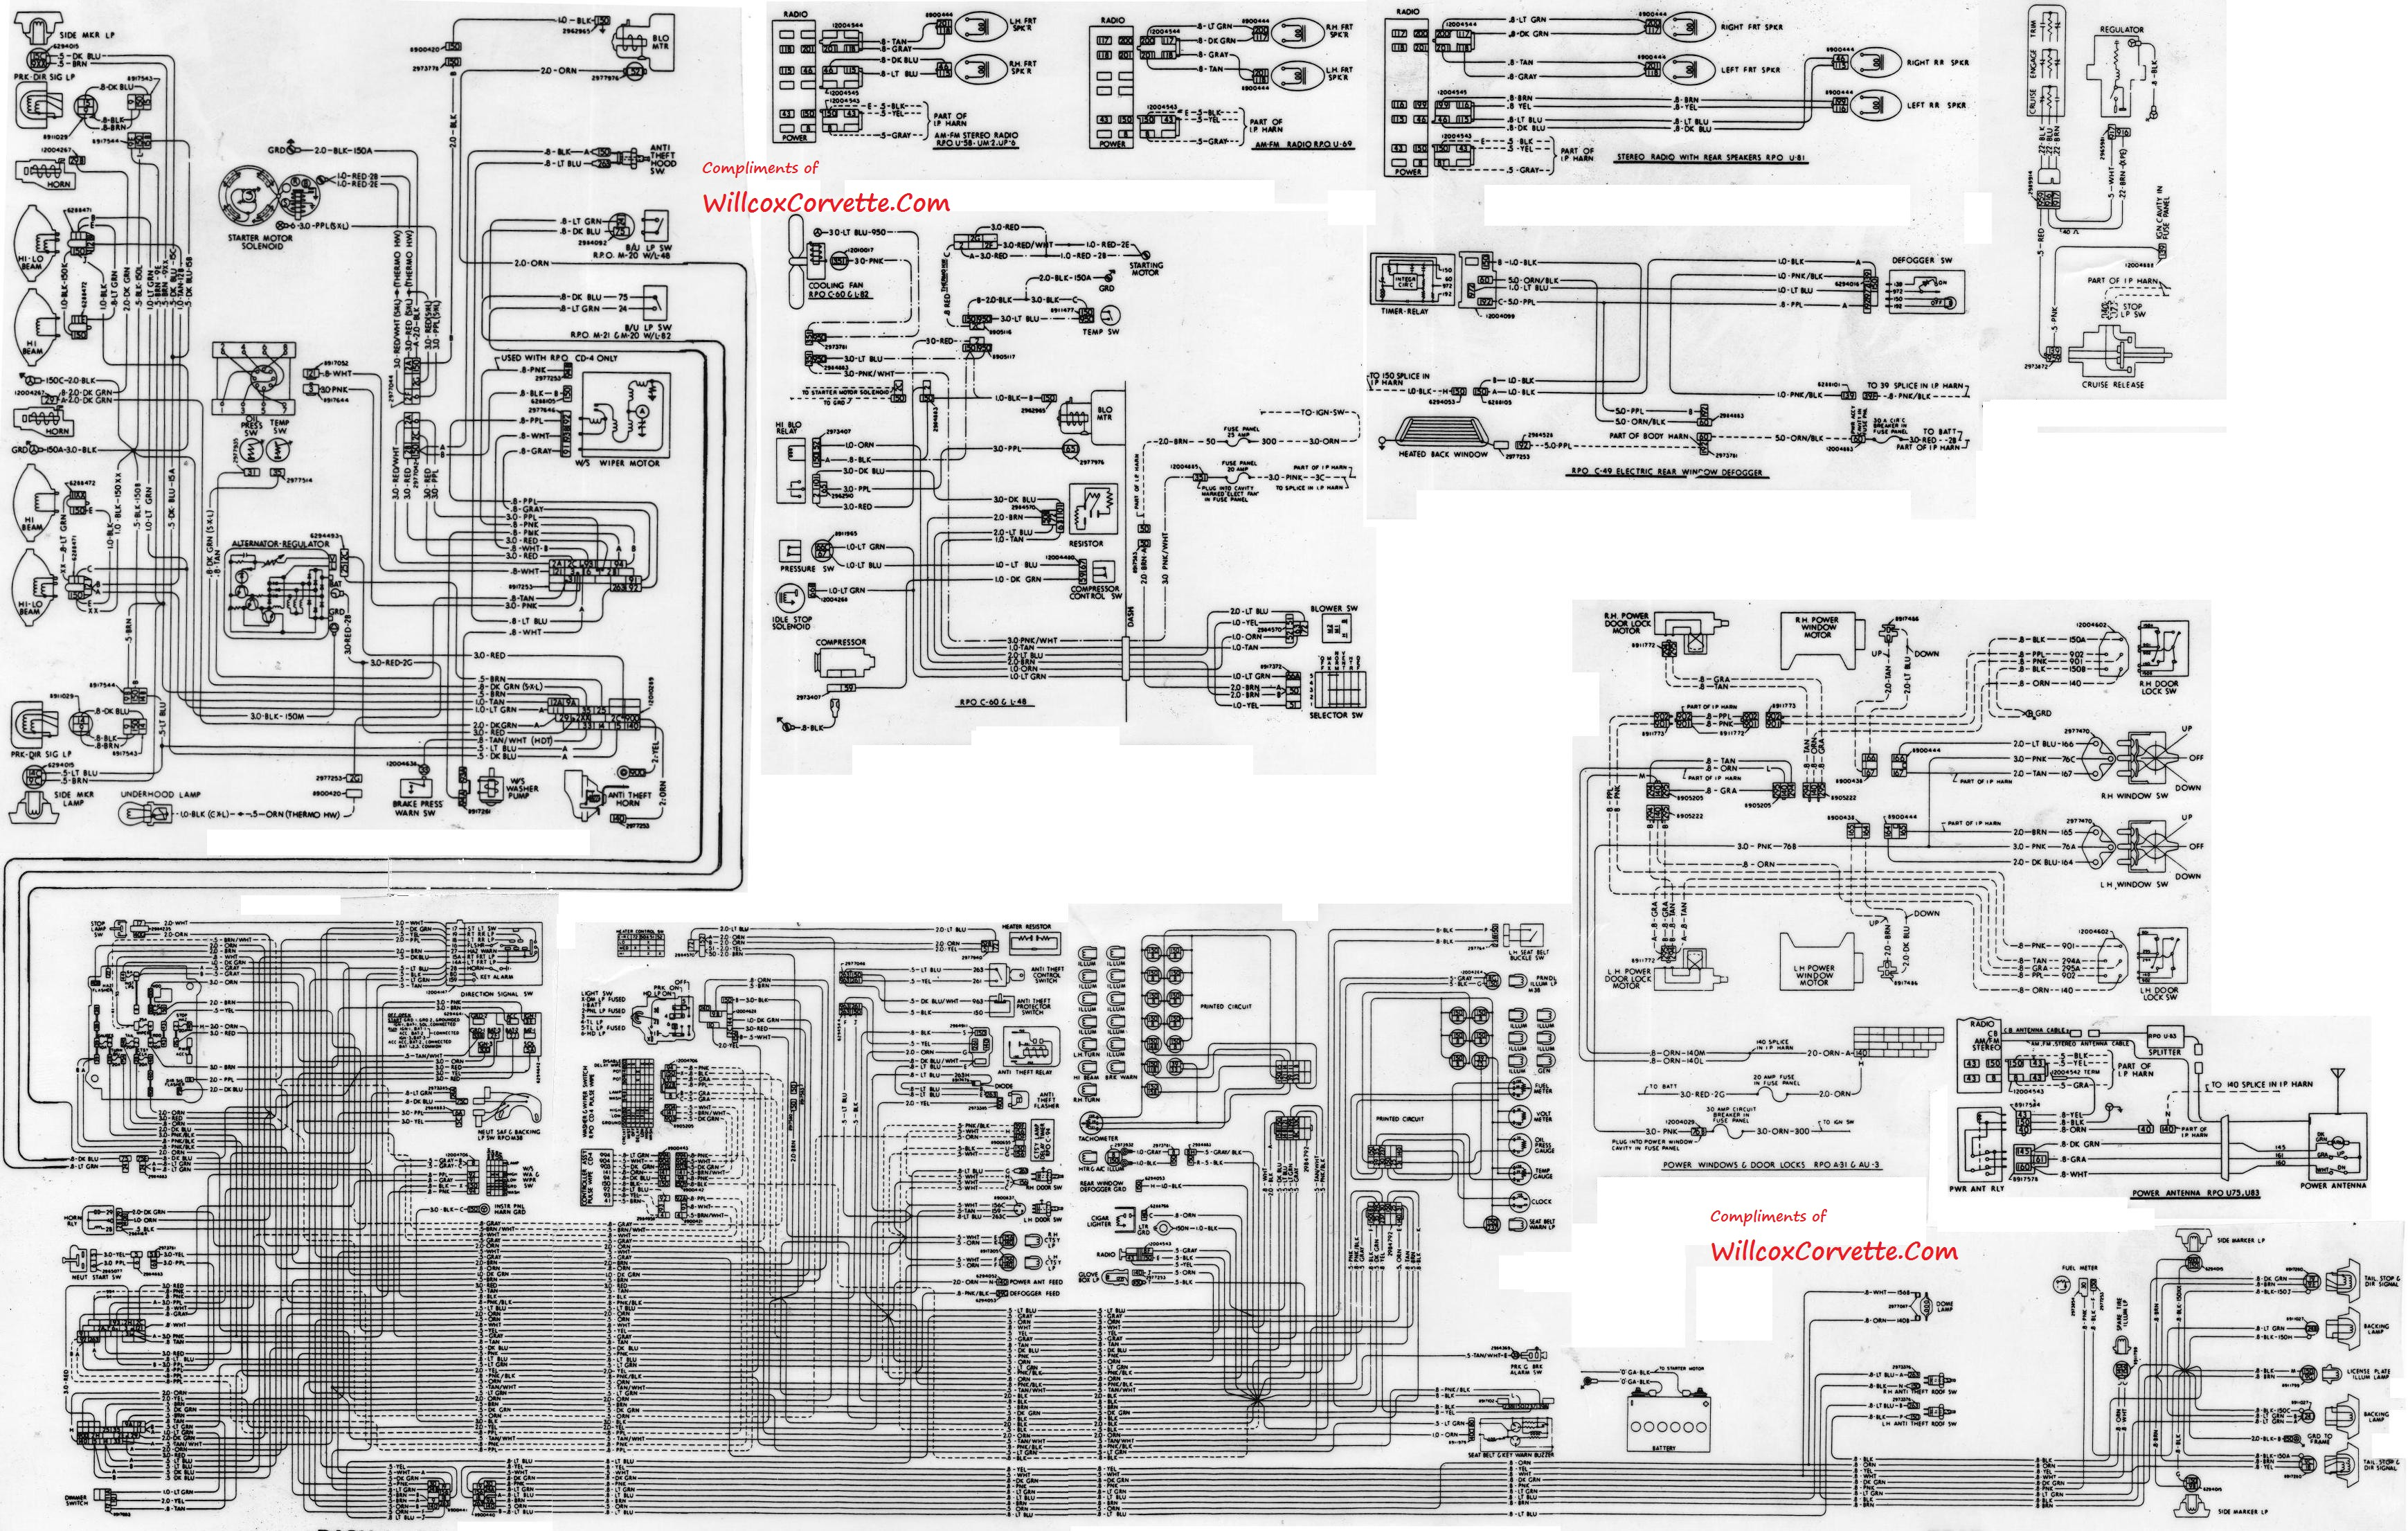 c6 corvette wiring diagrams diagram schematic rh yomelaniejo co 2005  Corvette ECM Wiring Diagram 2005 Corvette ECM Wiring Diagram